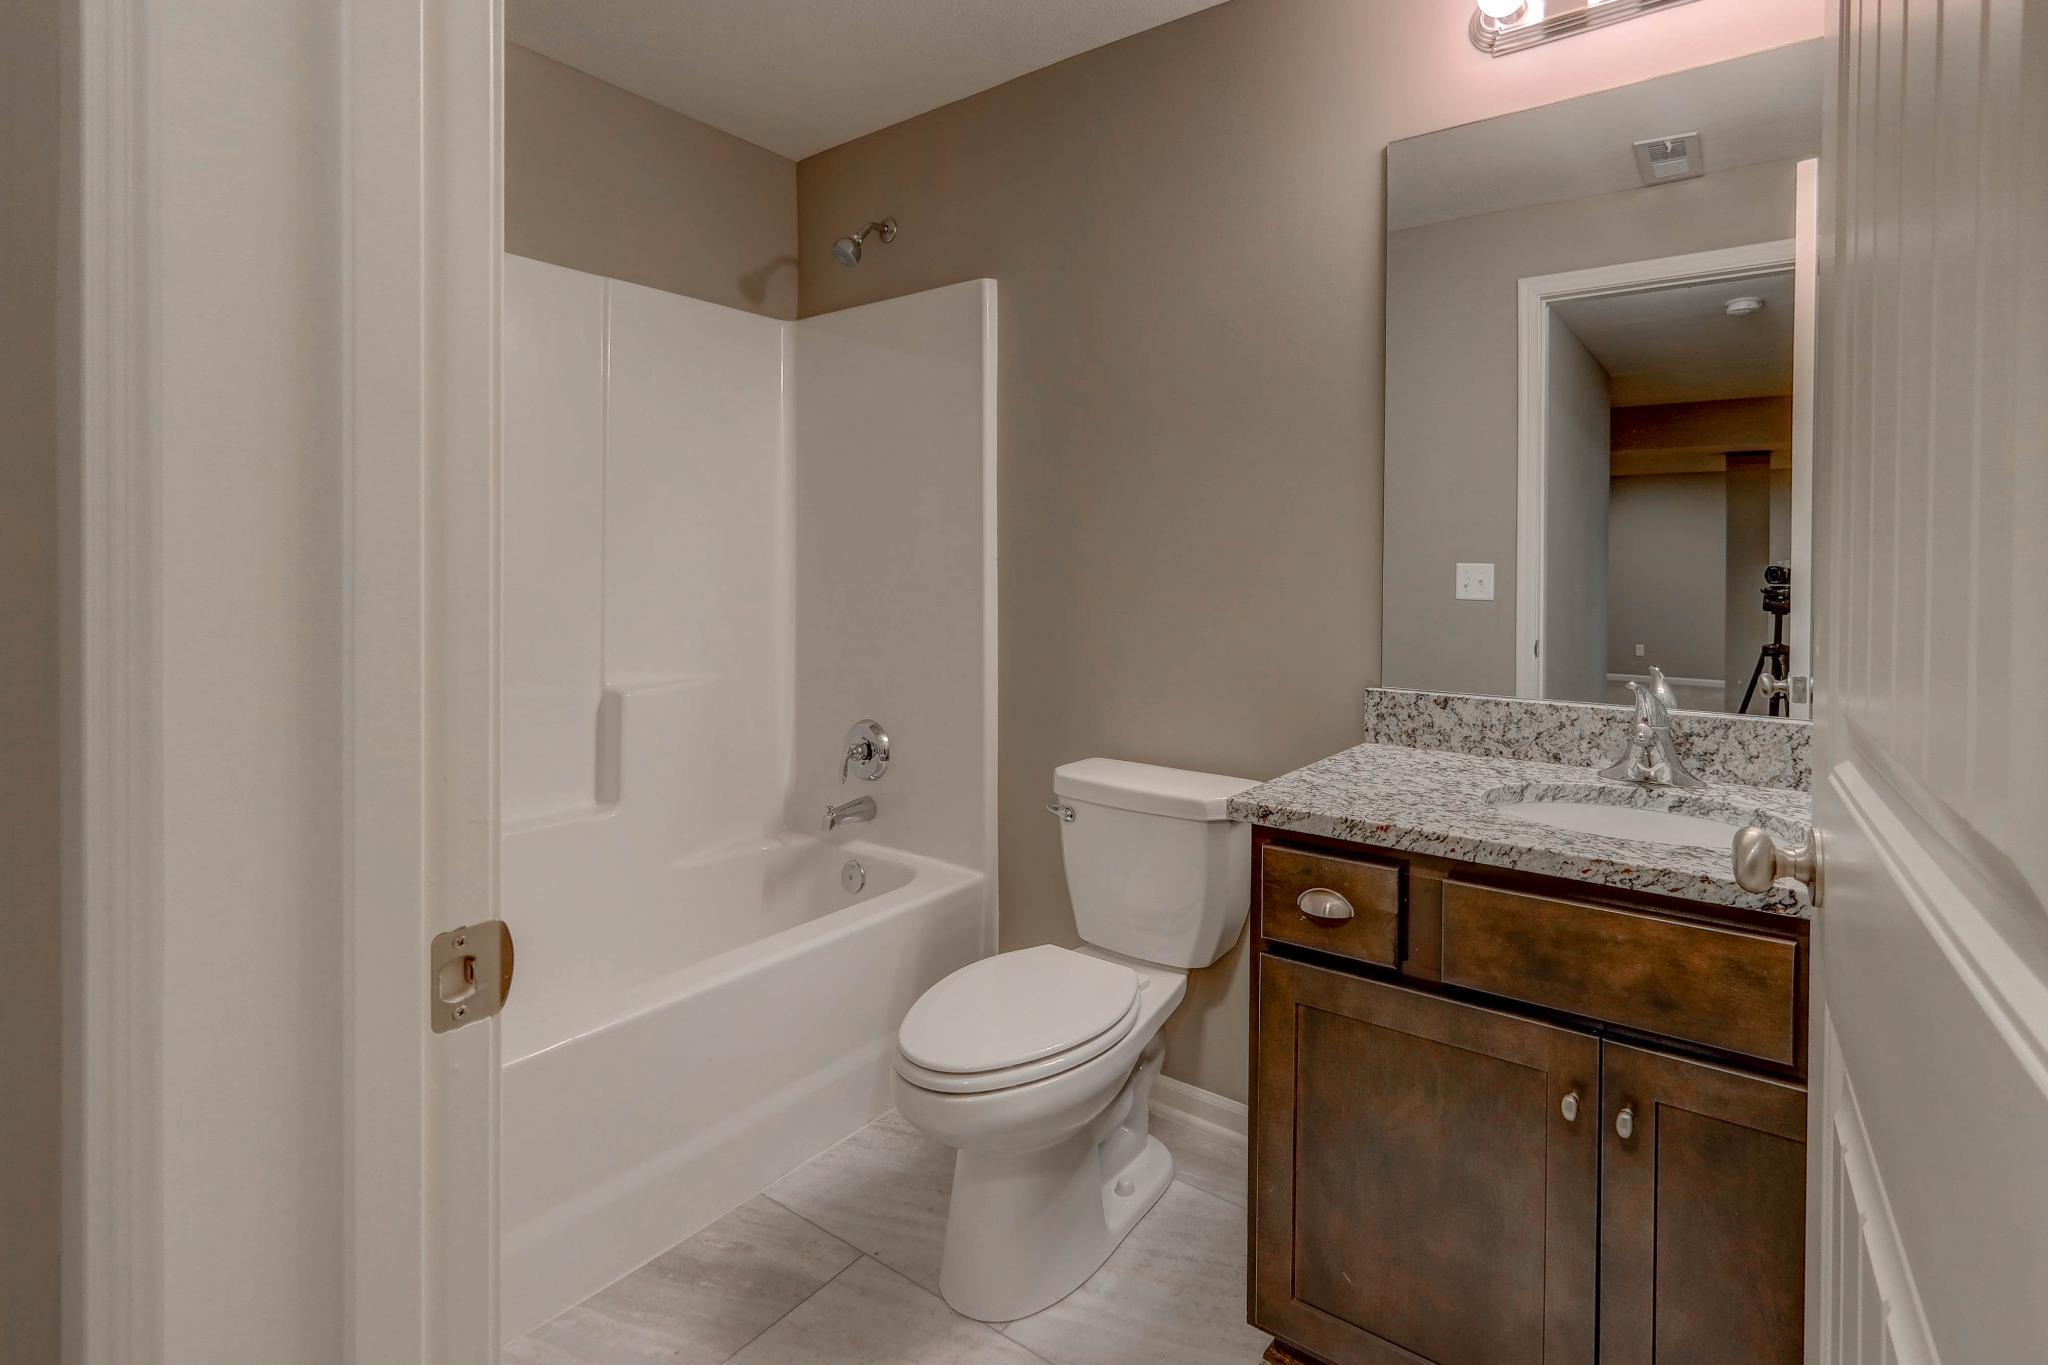 Bathroom featured in the Roanoke By Summit Homes in Kansas City, MO